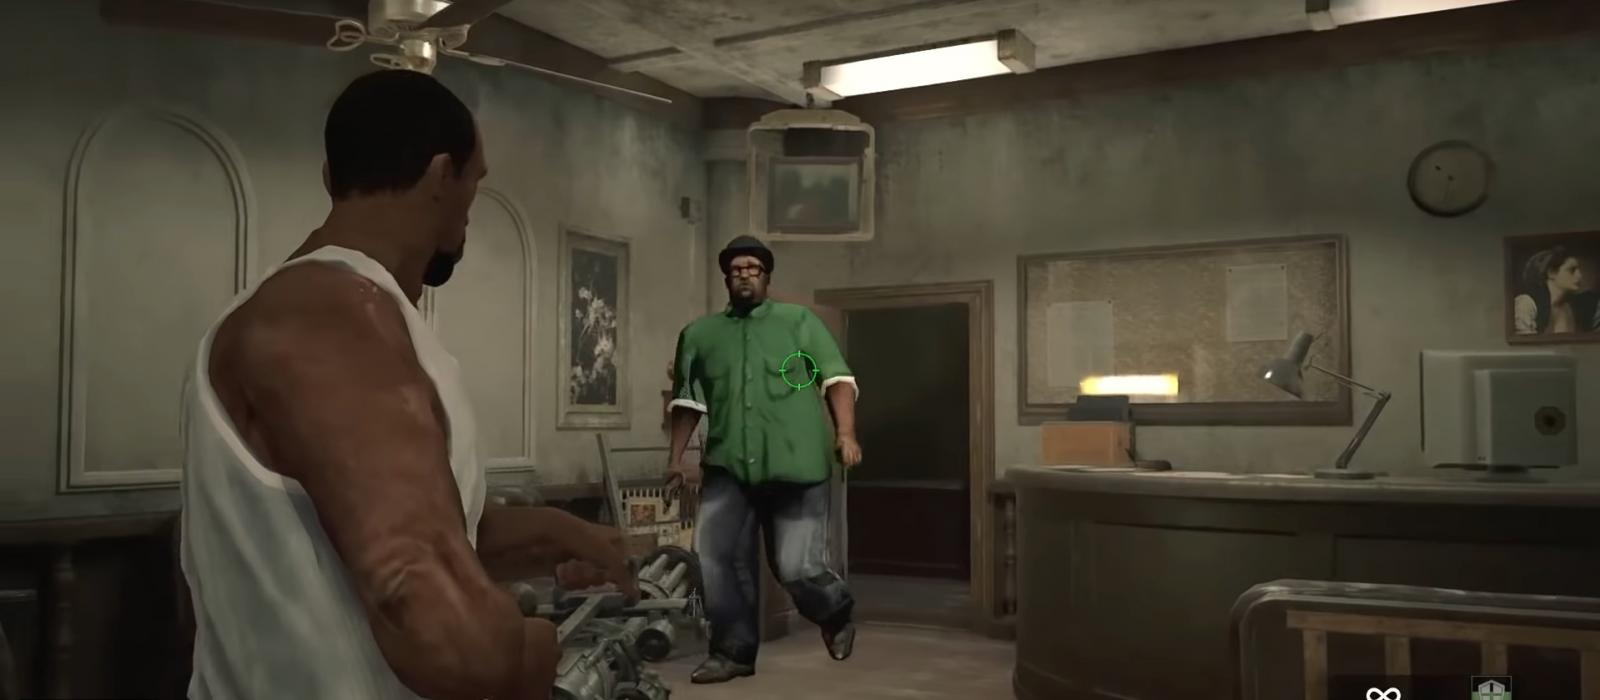 CJ y Big Smoke en Resident Evil 2 Remake gracias a un mod